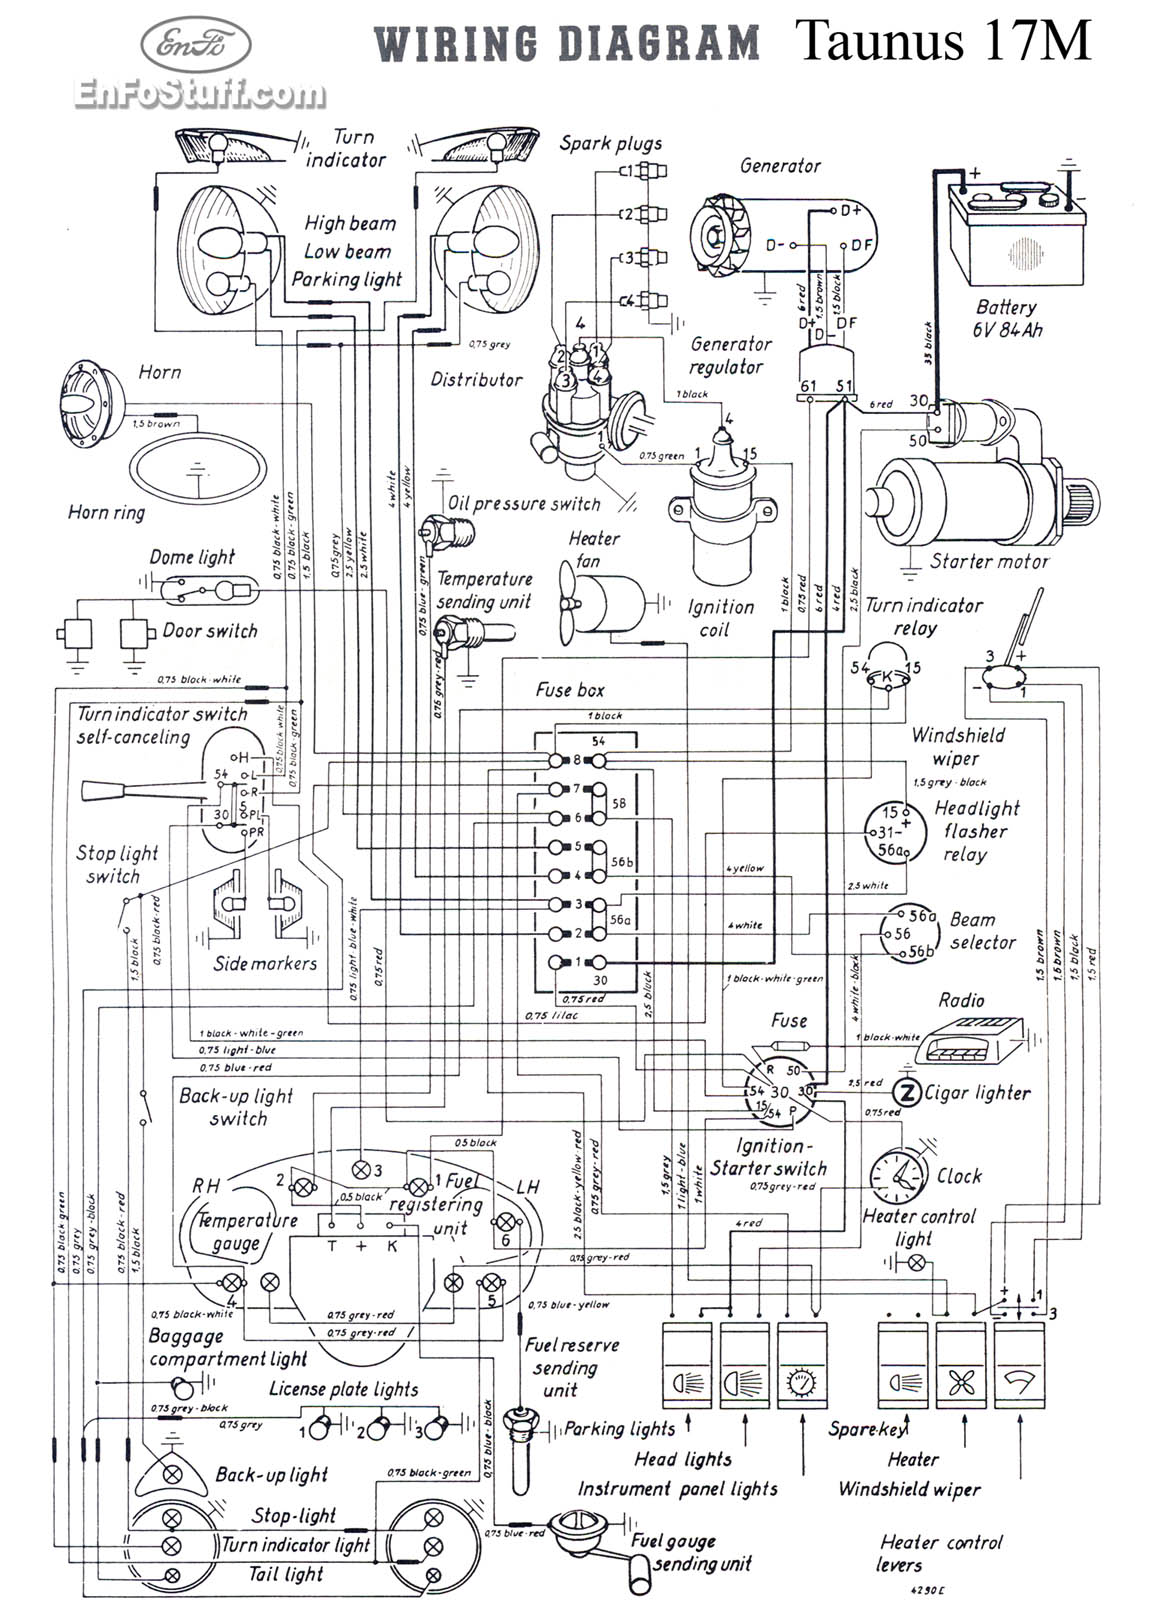 wiring diagram taunus 17m wiring diagrams (schematics) ford cortina wiring diagram at webbmarketing.co